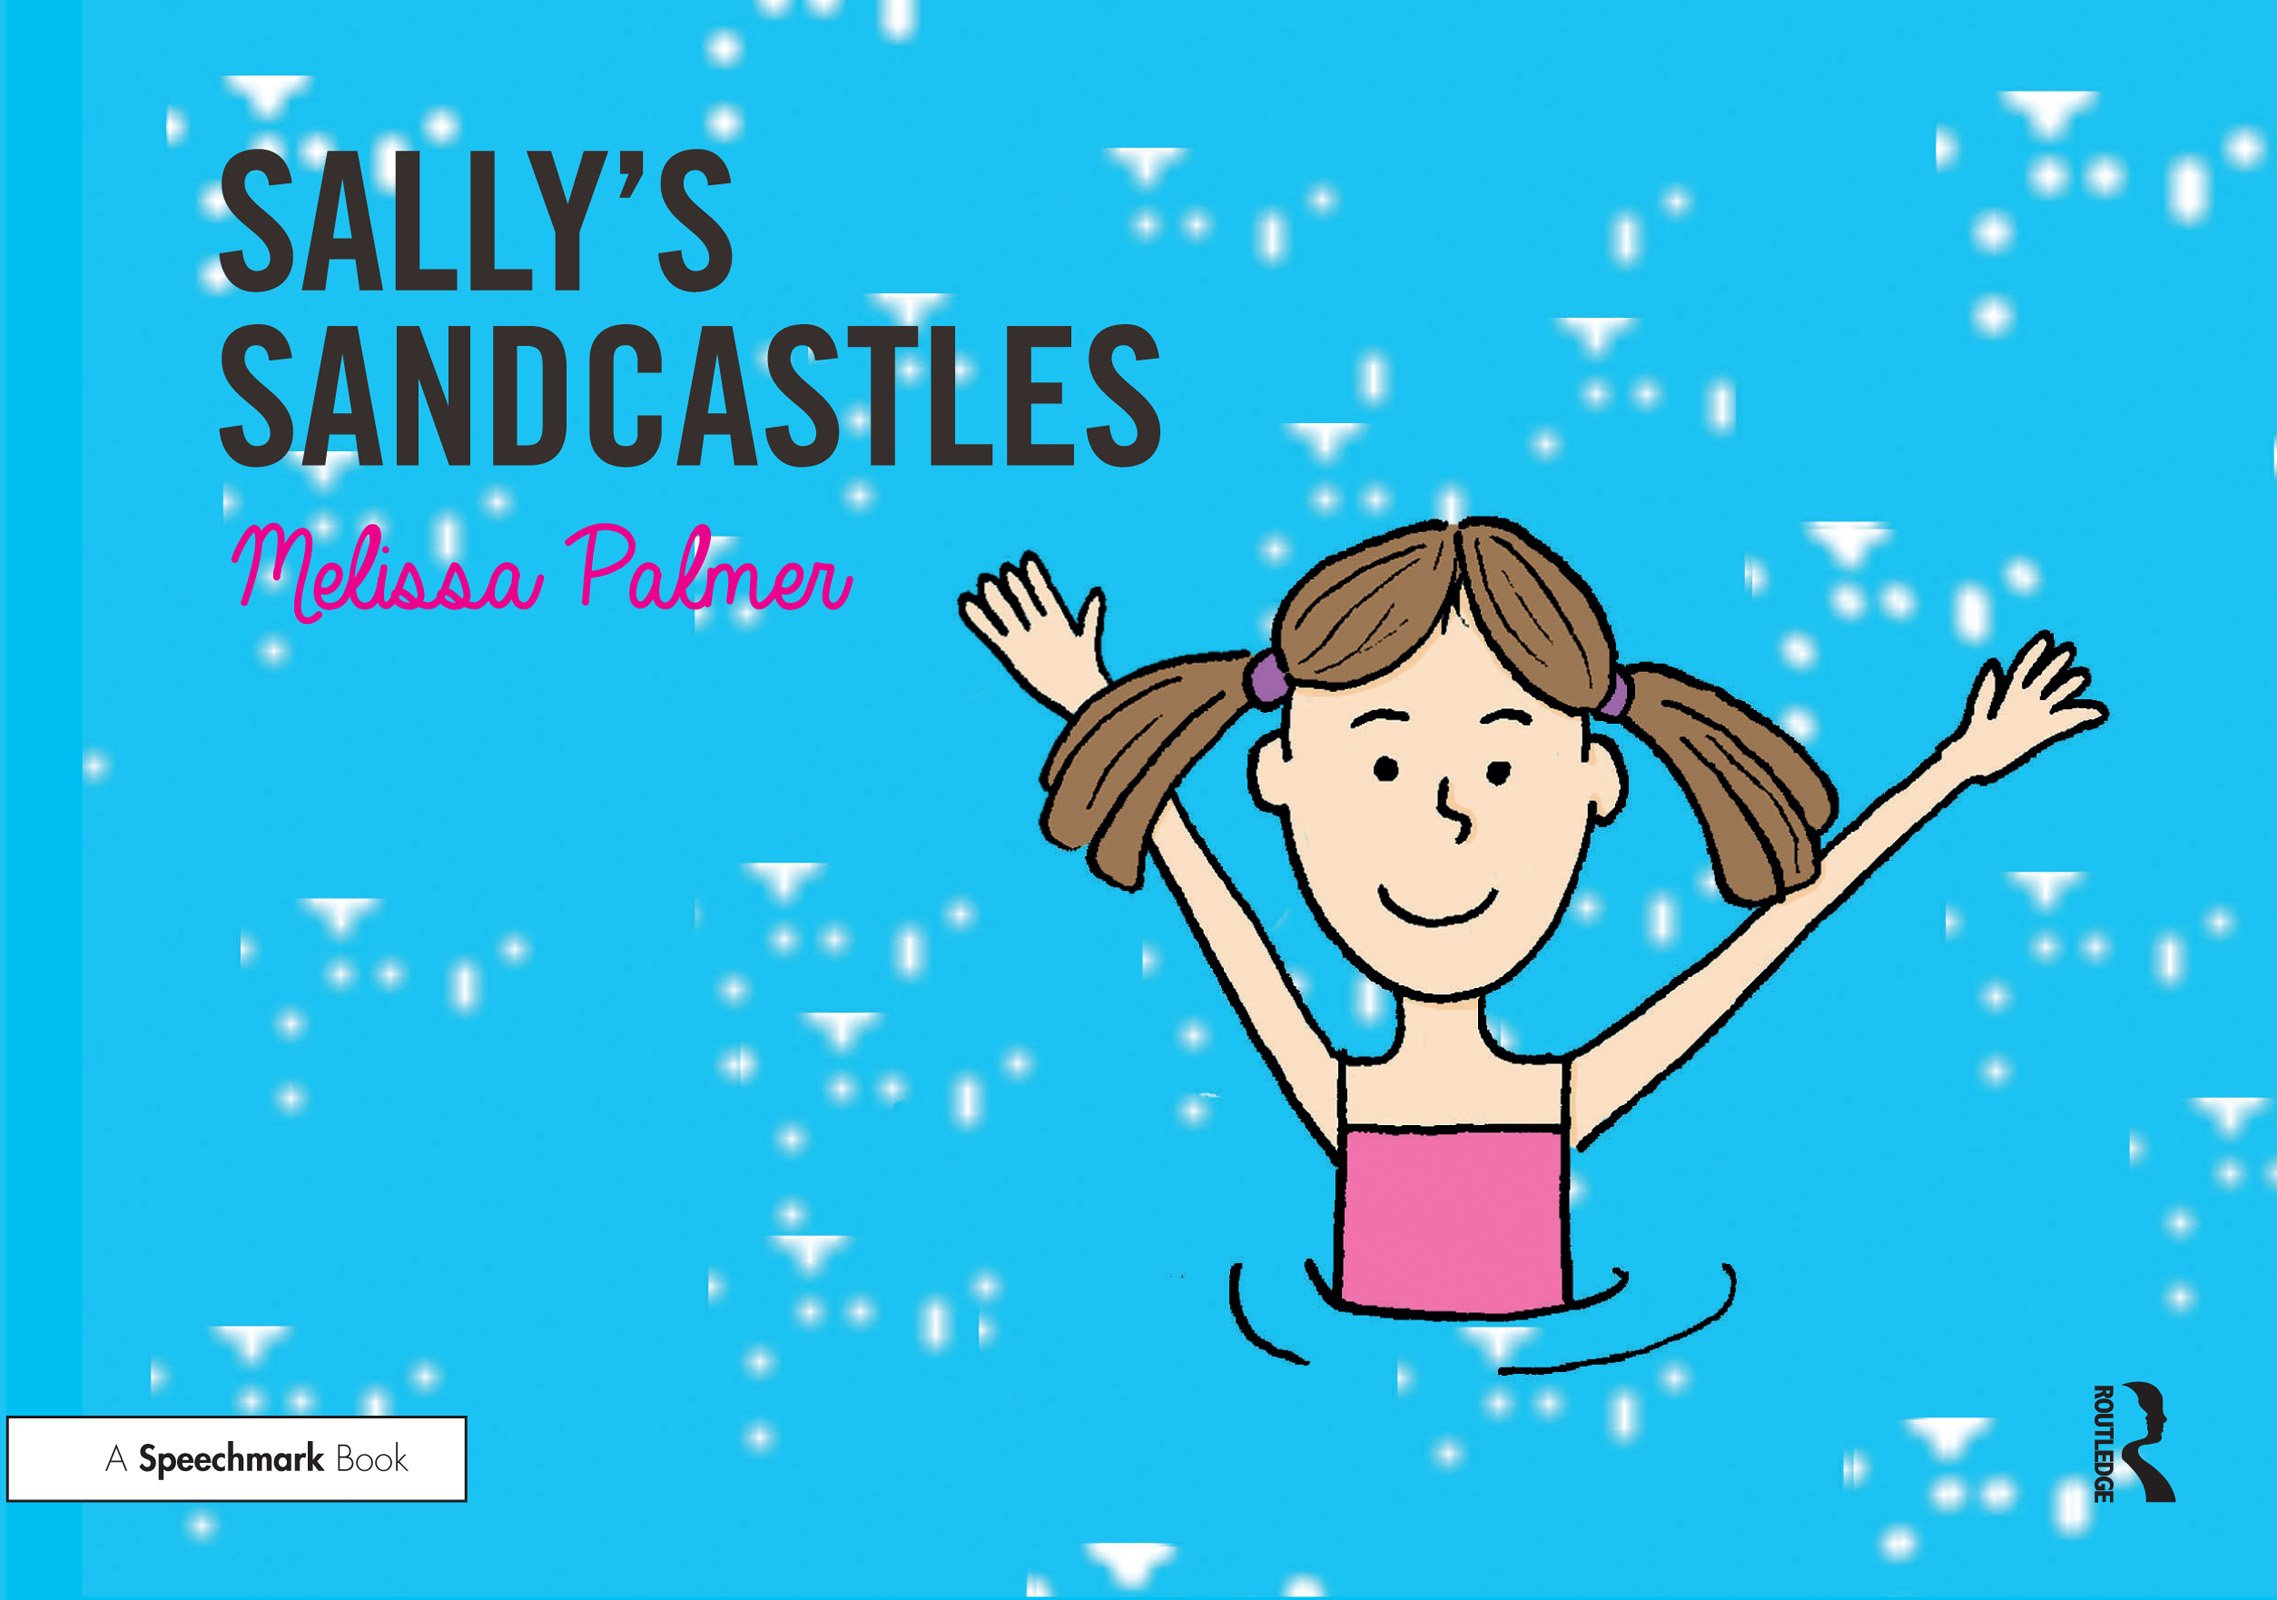 Sally's Sandcastles book cover